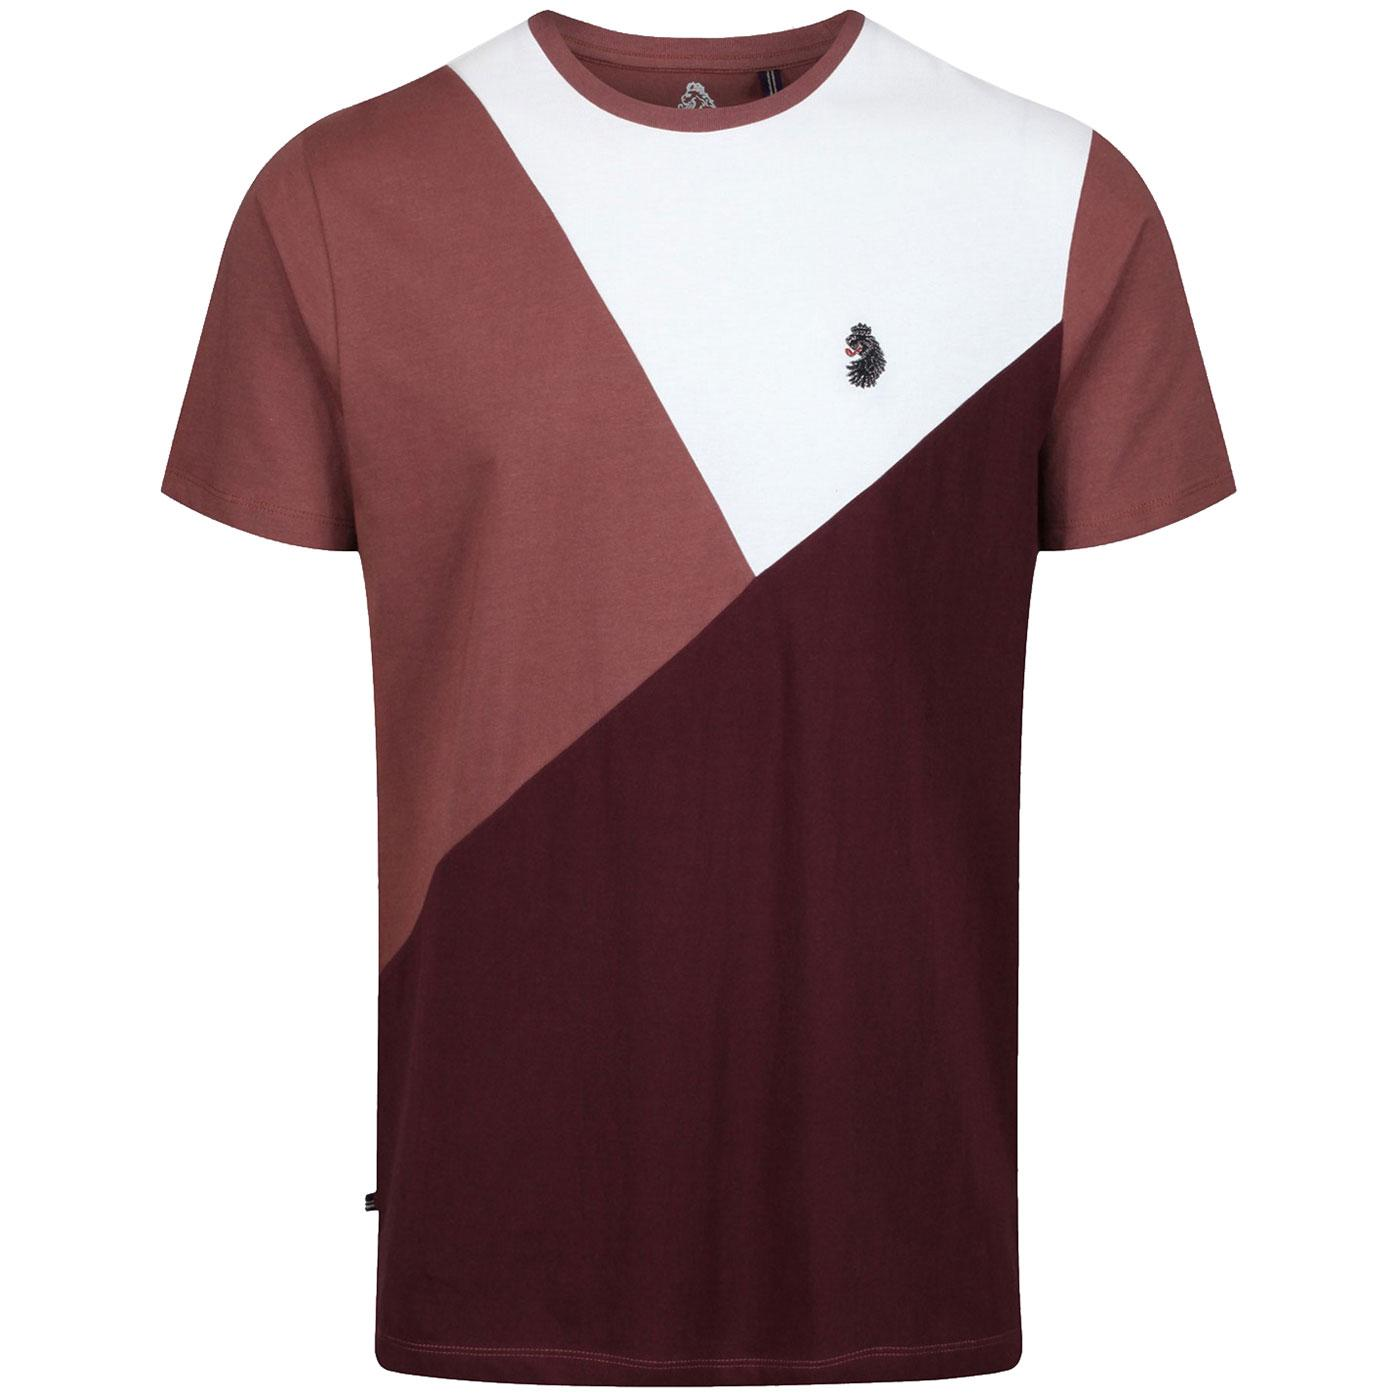 Further From The Wind LUKE 1977 Asymmetric Tee SG